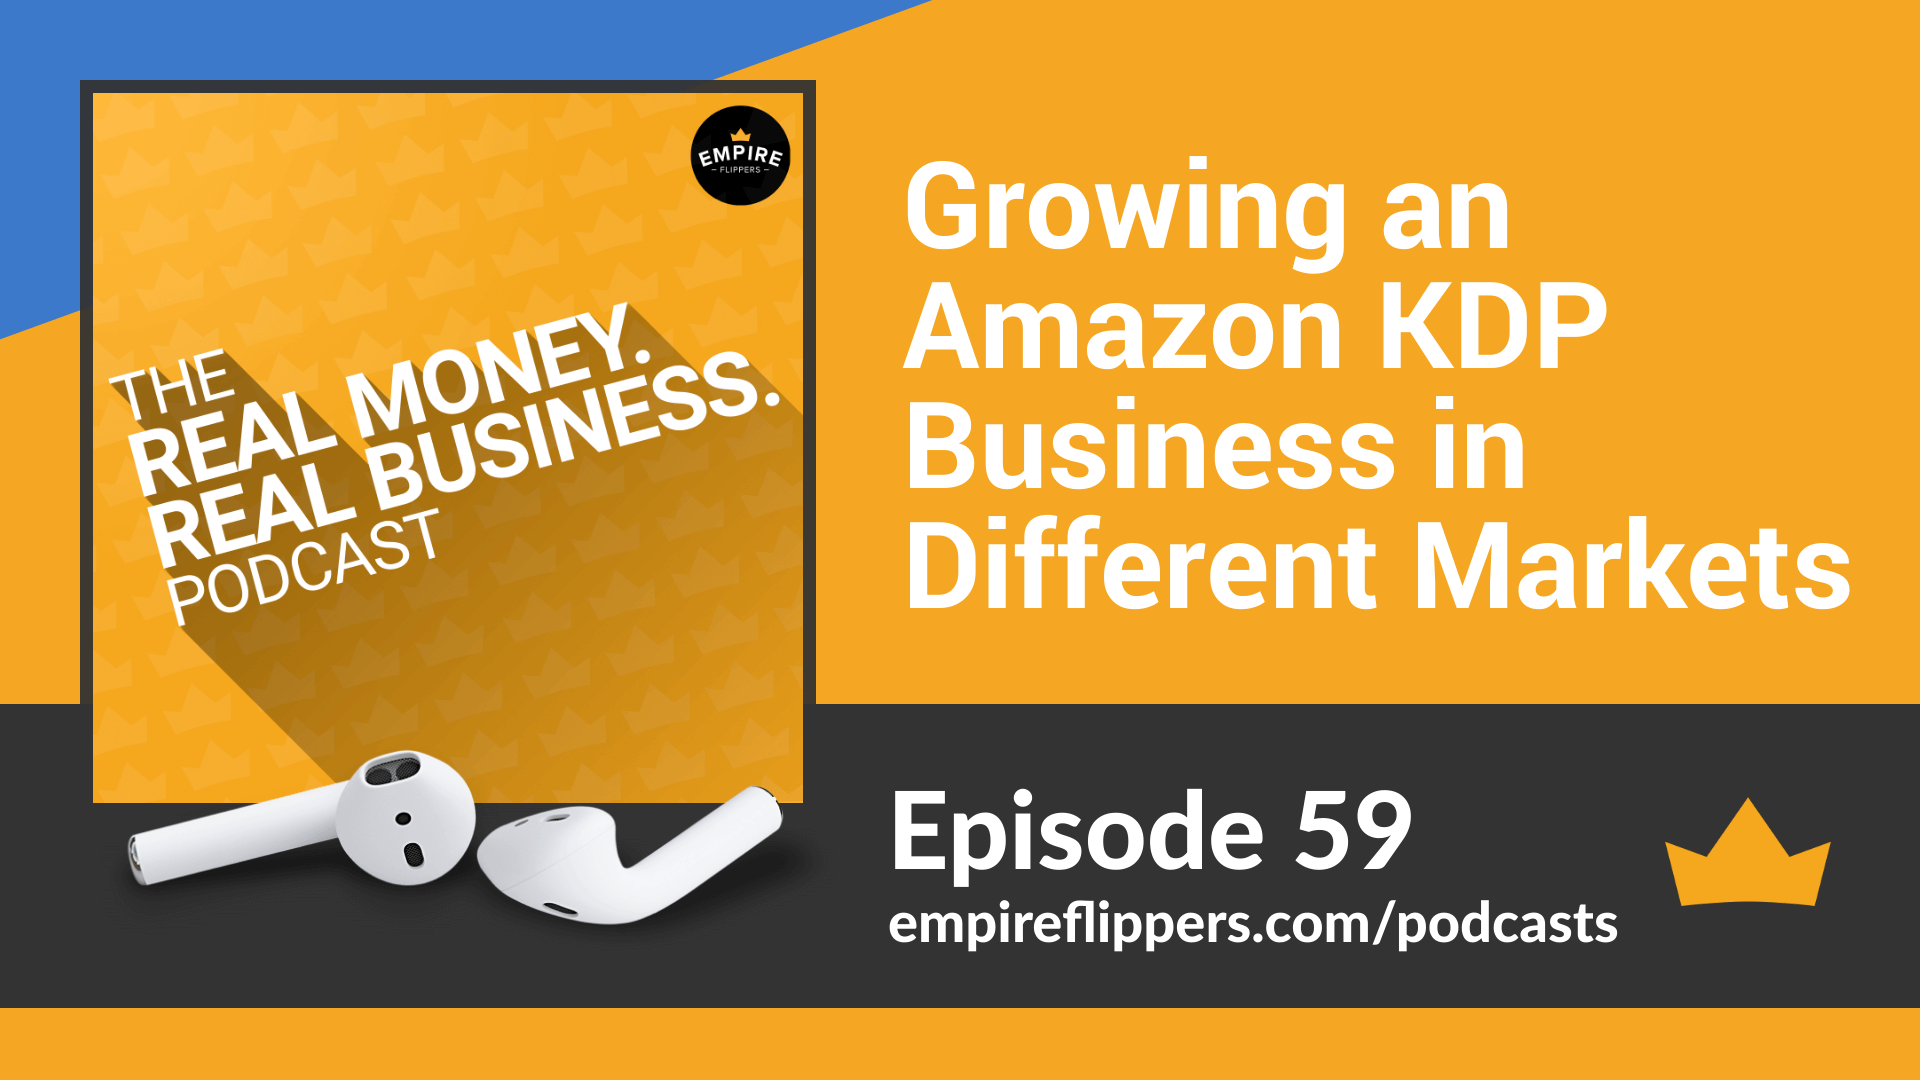 RMRB 59 Growing an Amazon KDP Business in Different Markets